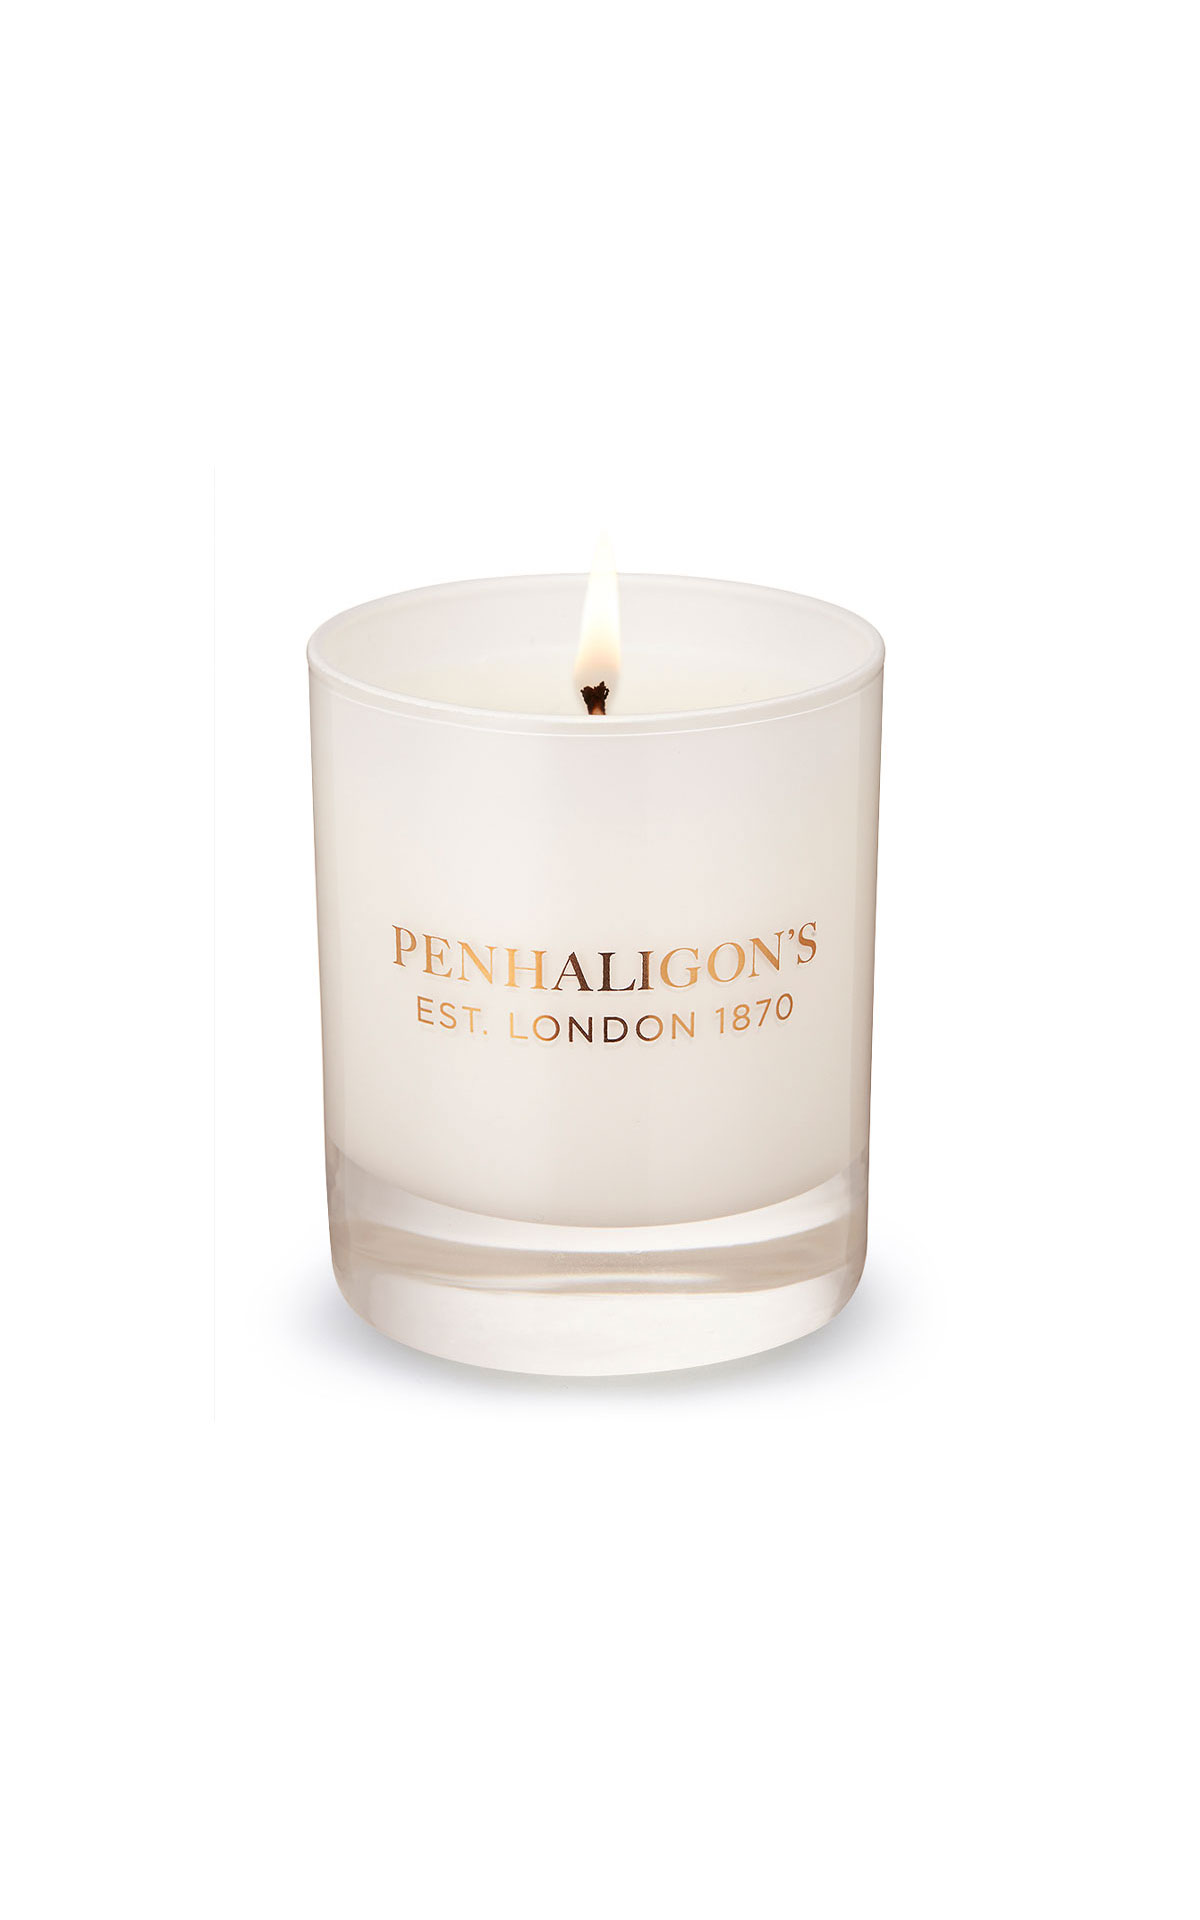 Penhaligon's Lily of the valley candle from Bicester Village